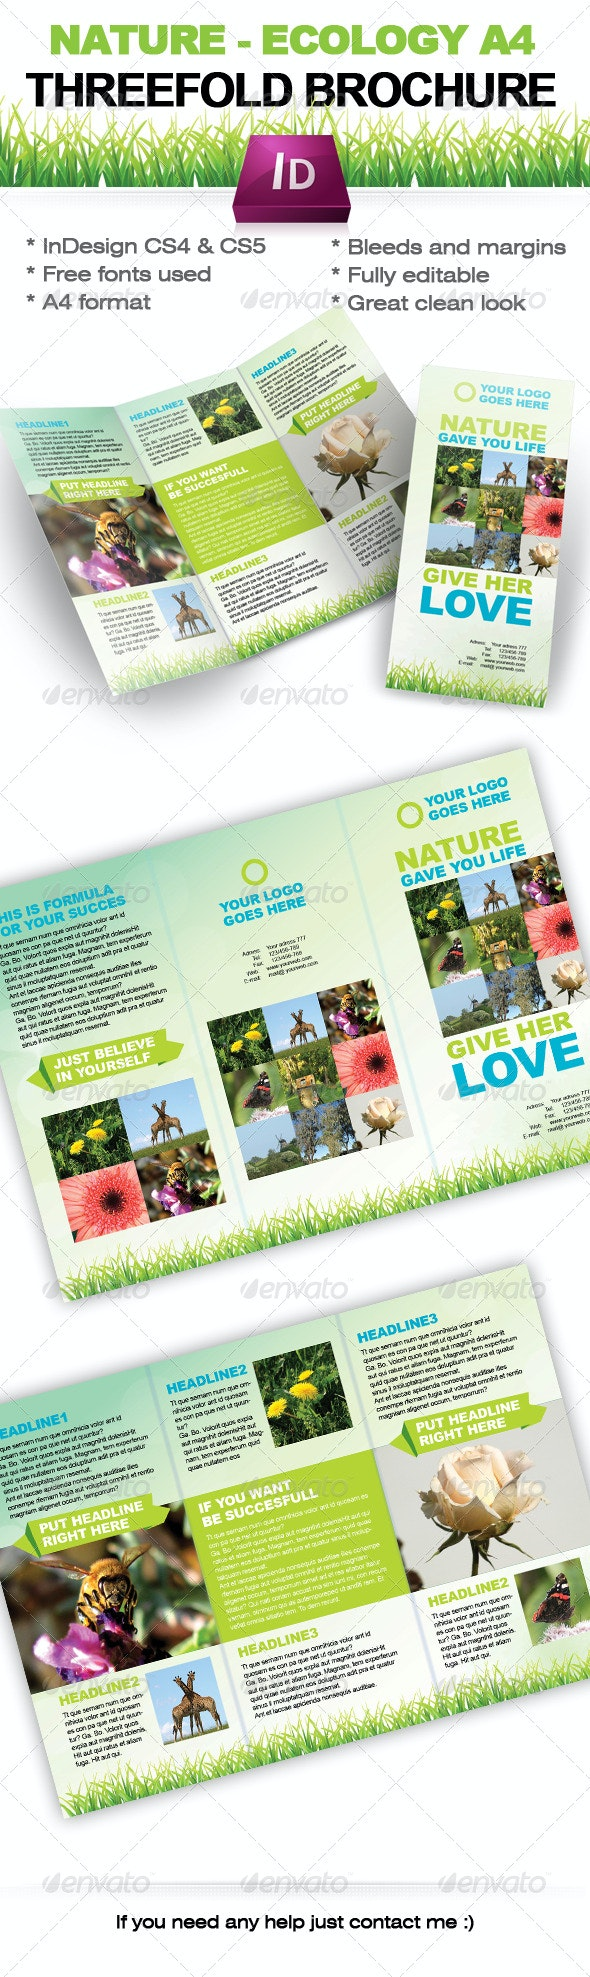 Nature - Ecology Threefold brochure - Indesign A4 - Corporate Brochures